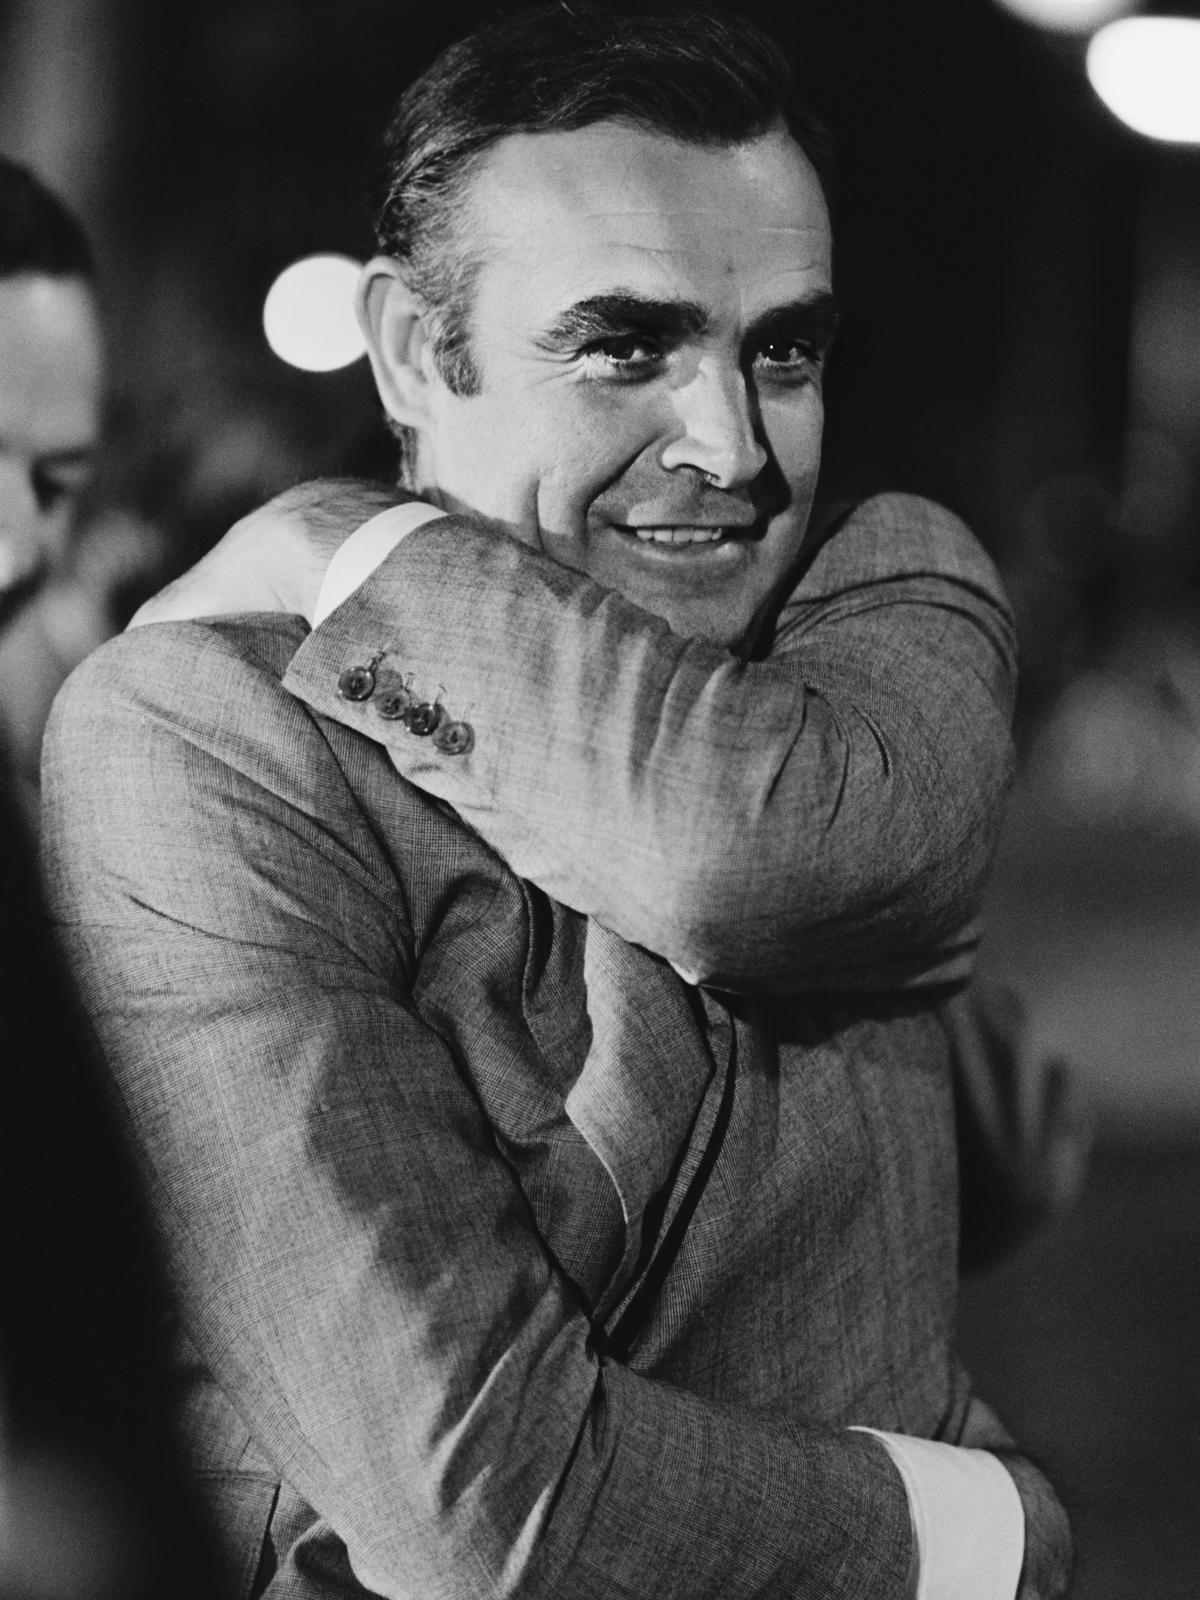 Sean Connery, pictured in Amsterdam during the 1971 filming of Diamonds Are Forever, played James Bond in seven movies.